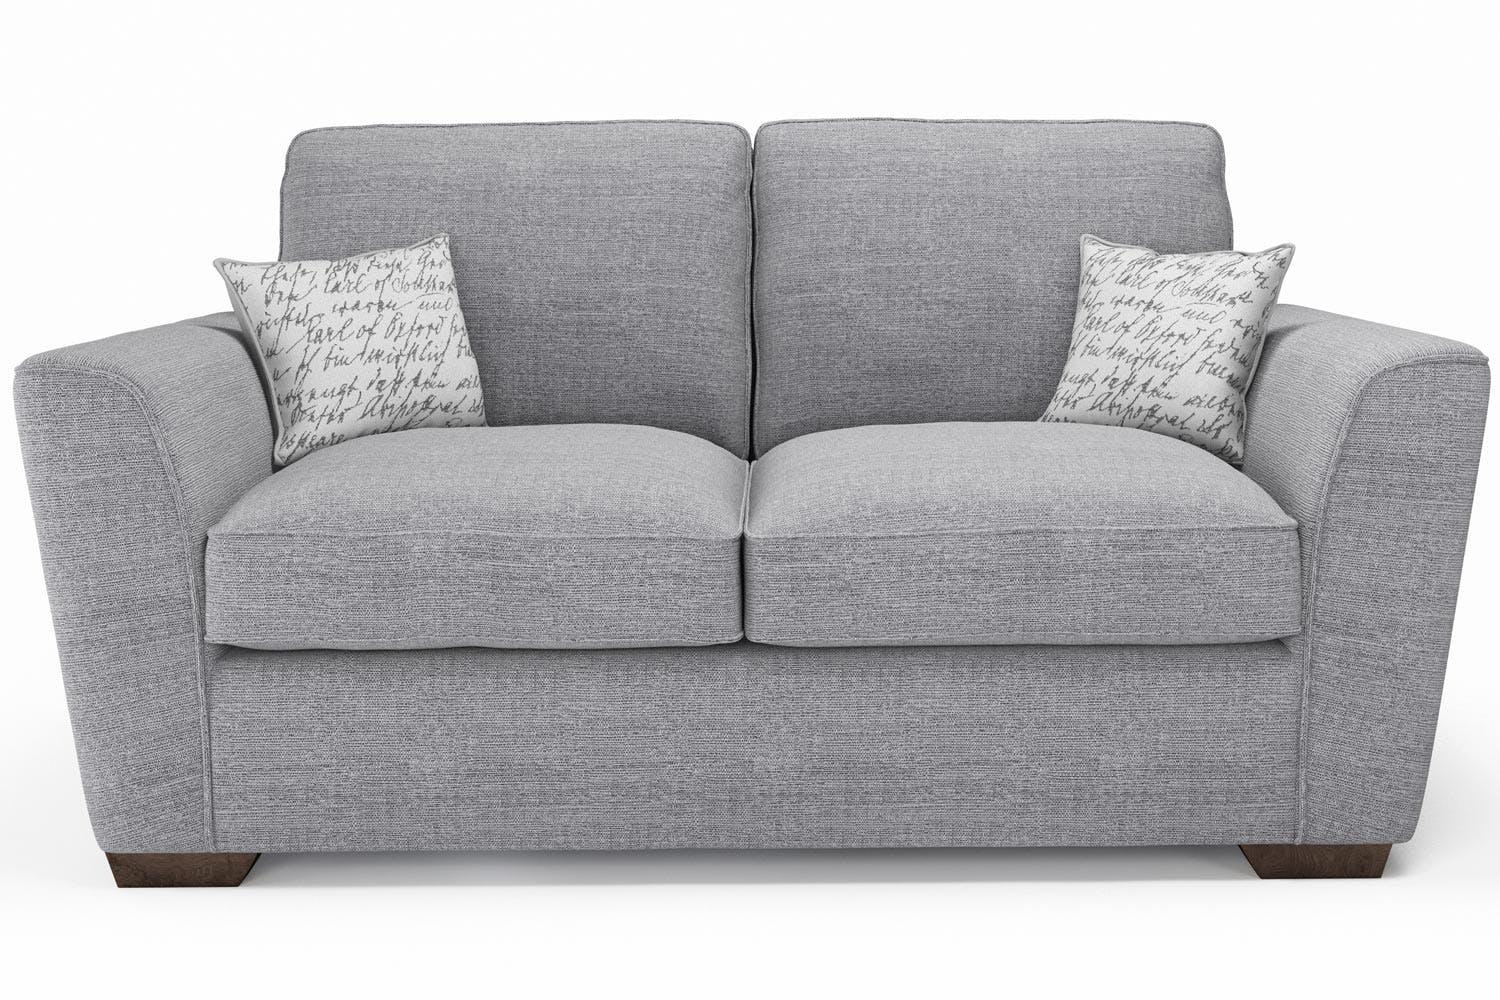 10-Best-2-Seater-Sofa-Under-15000-63